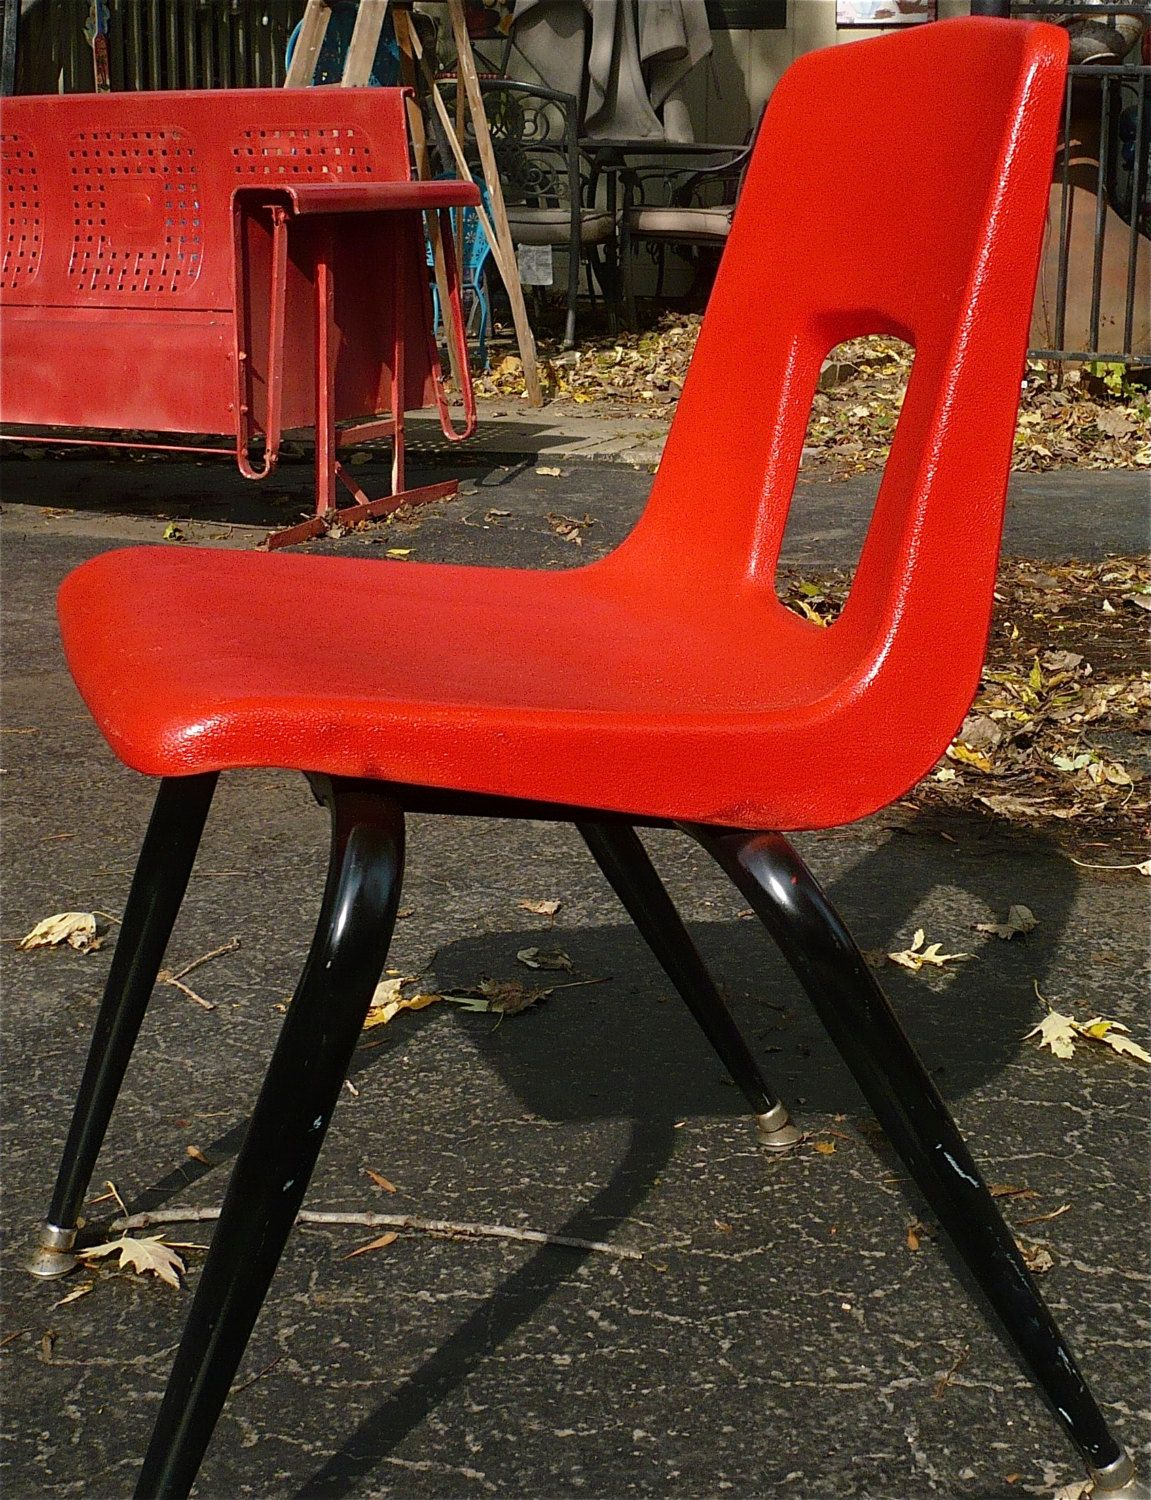 artco bell chairs world market outdoor chair cushions retro mcm red mid century childs vintage furniture children plastic by